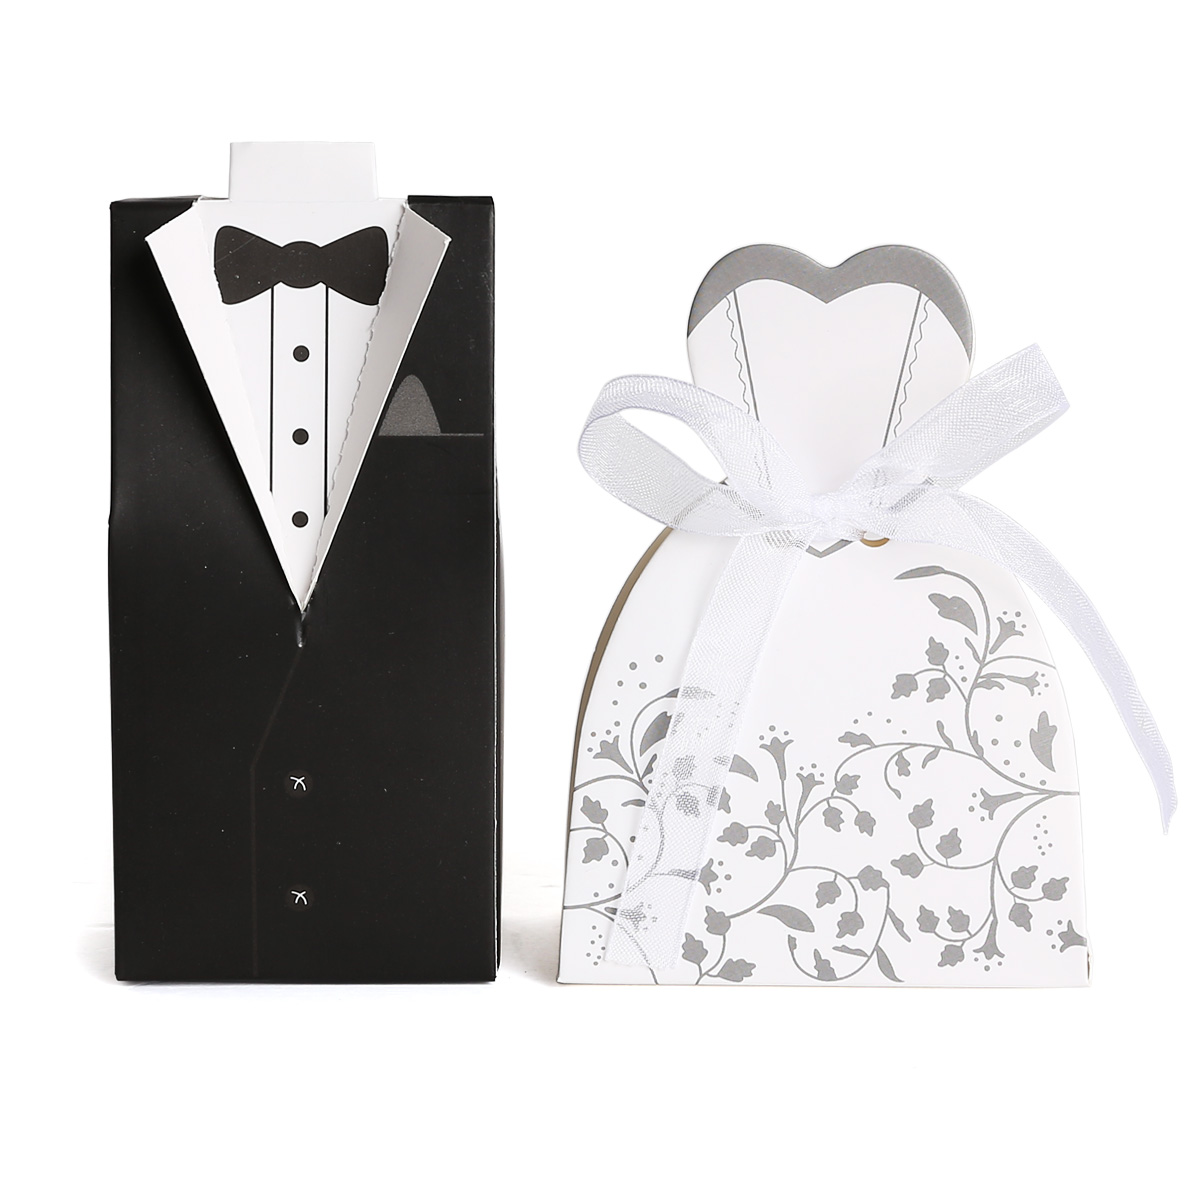 Wedding Gifts For The Bride And Groom Australia : Wedding Bomboniere Cake Candy Favour Boxes Dress & Tuxedo Bride Groom ...